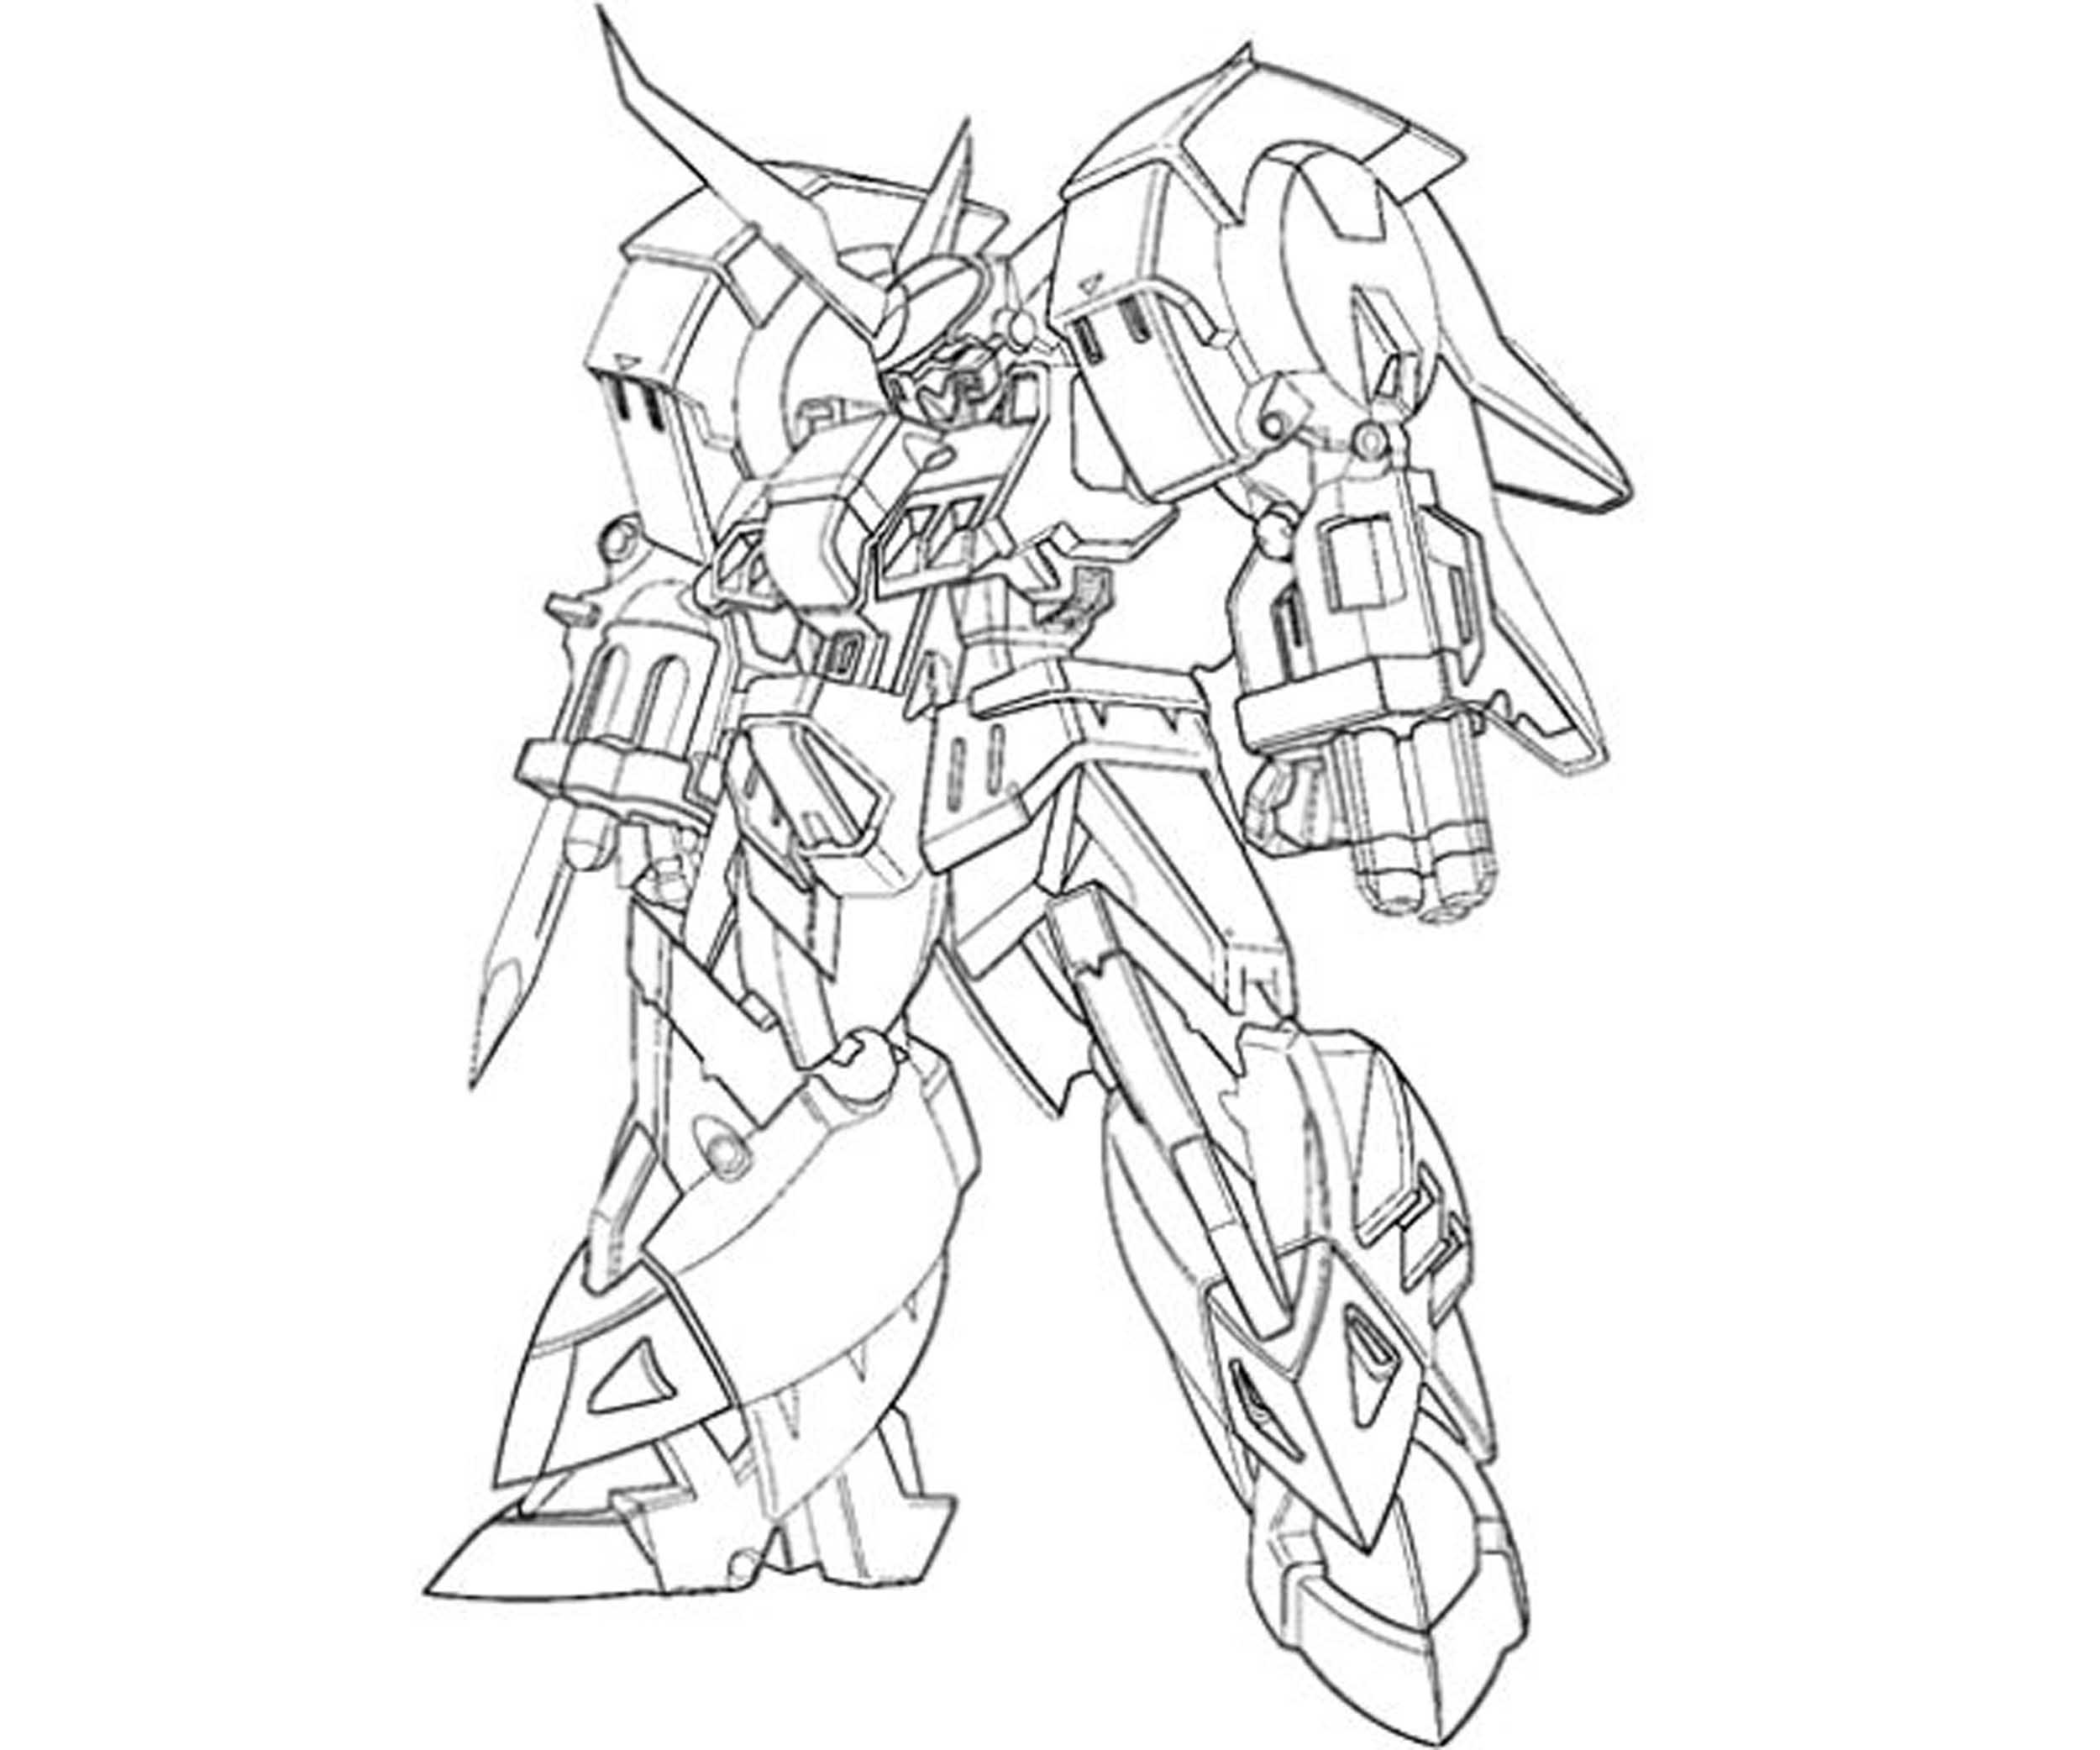 Ravishing Transformers Prime Coloring Pages Printable For Funny